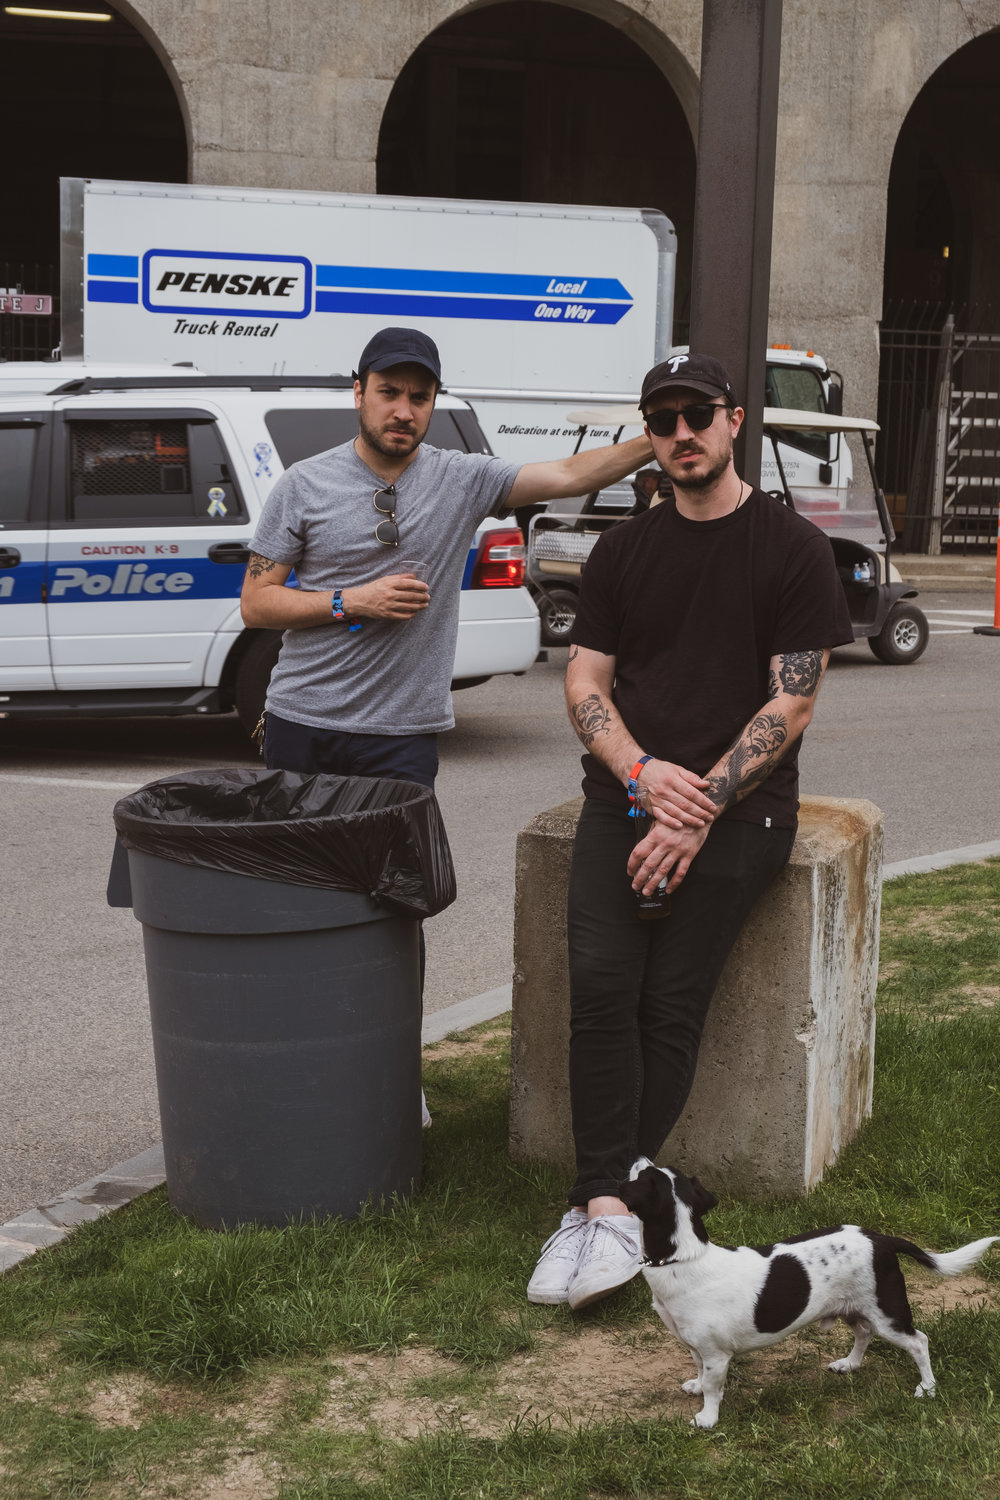 Trash Cans will be a recurring vehicle of self expression in this blog